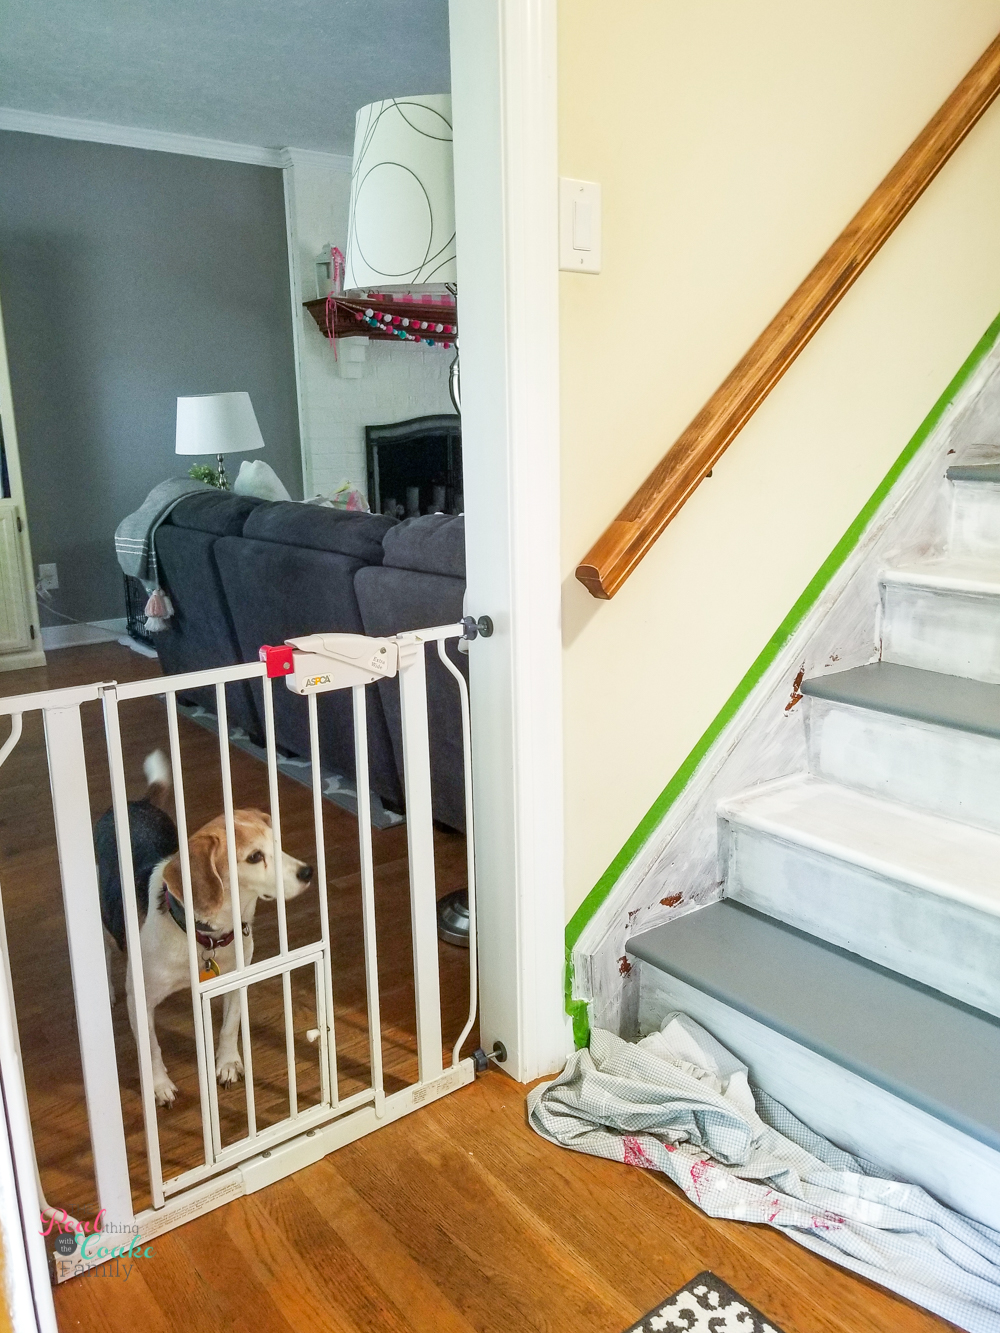 blocking dog from wet paint on stairs